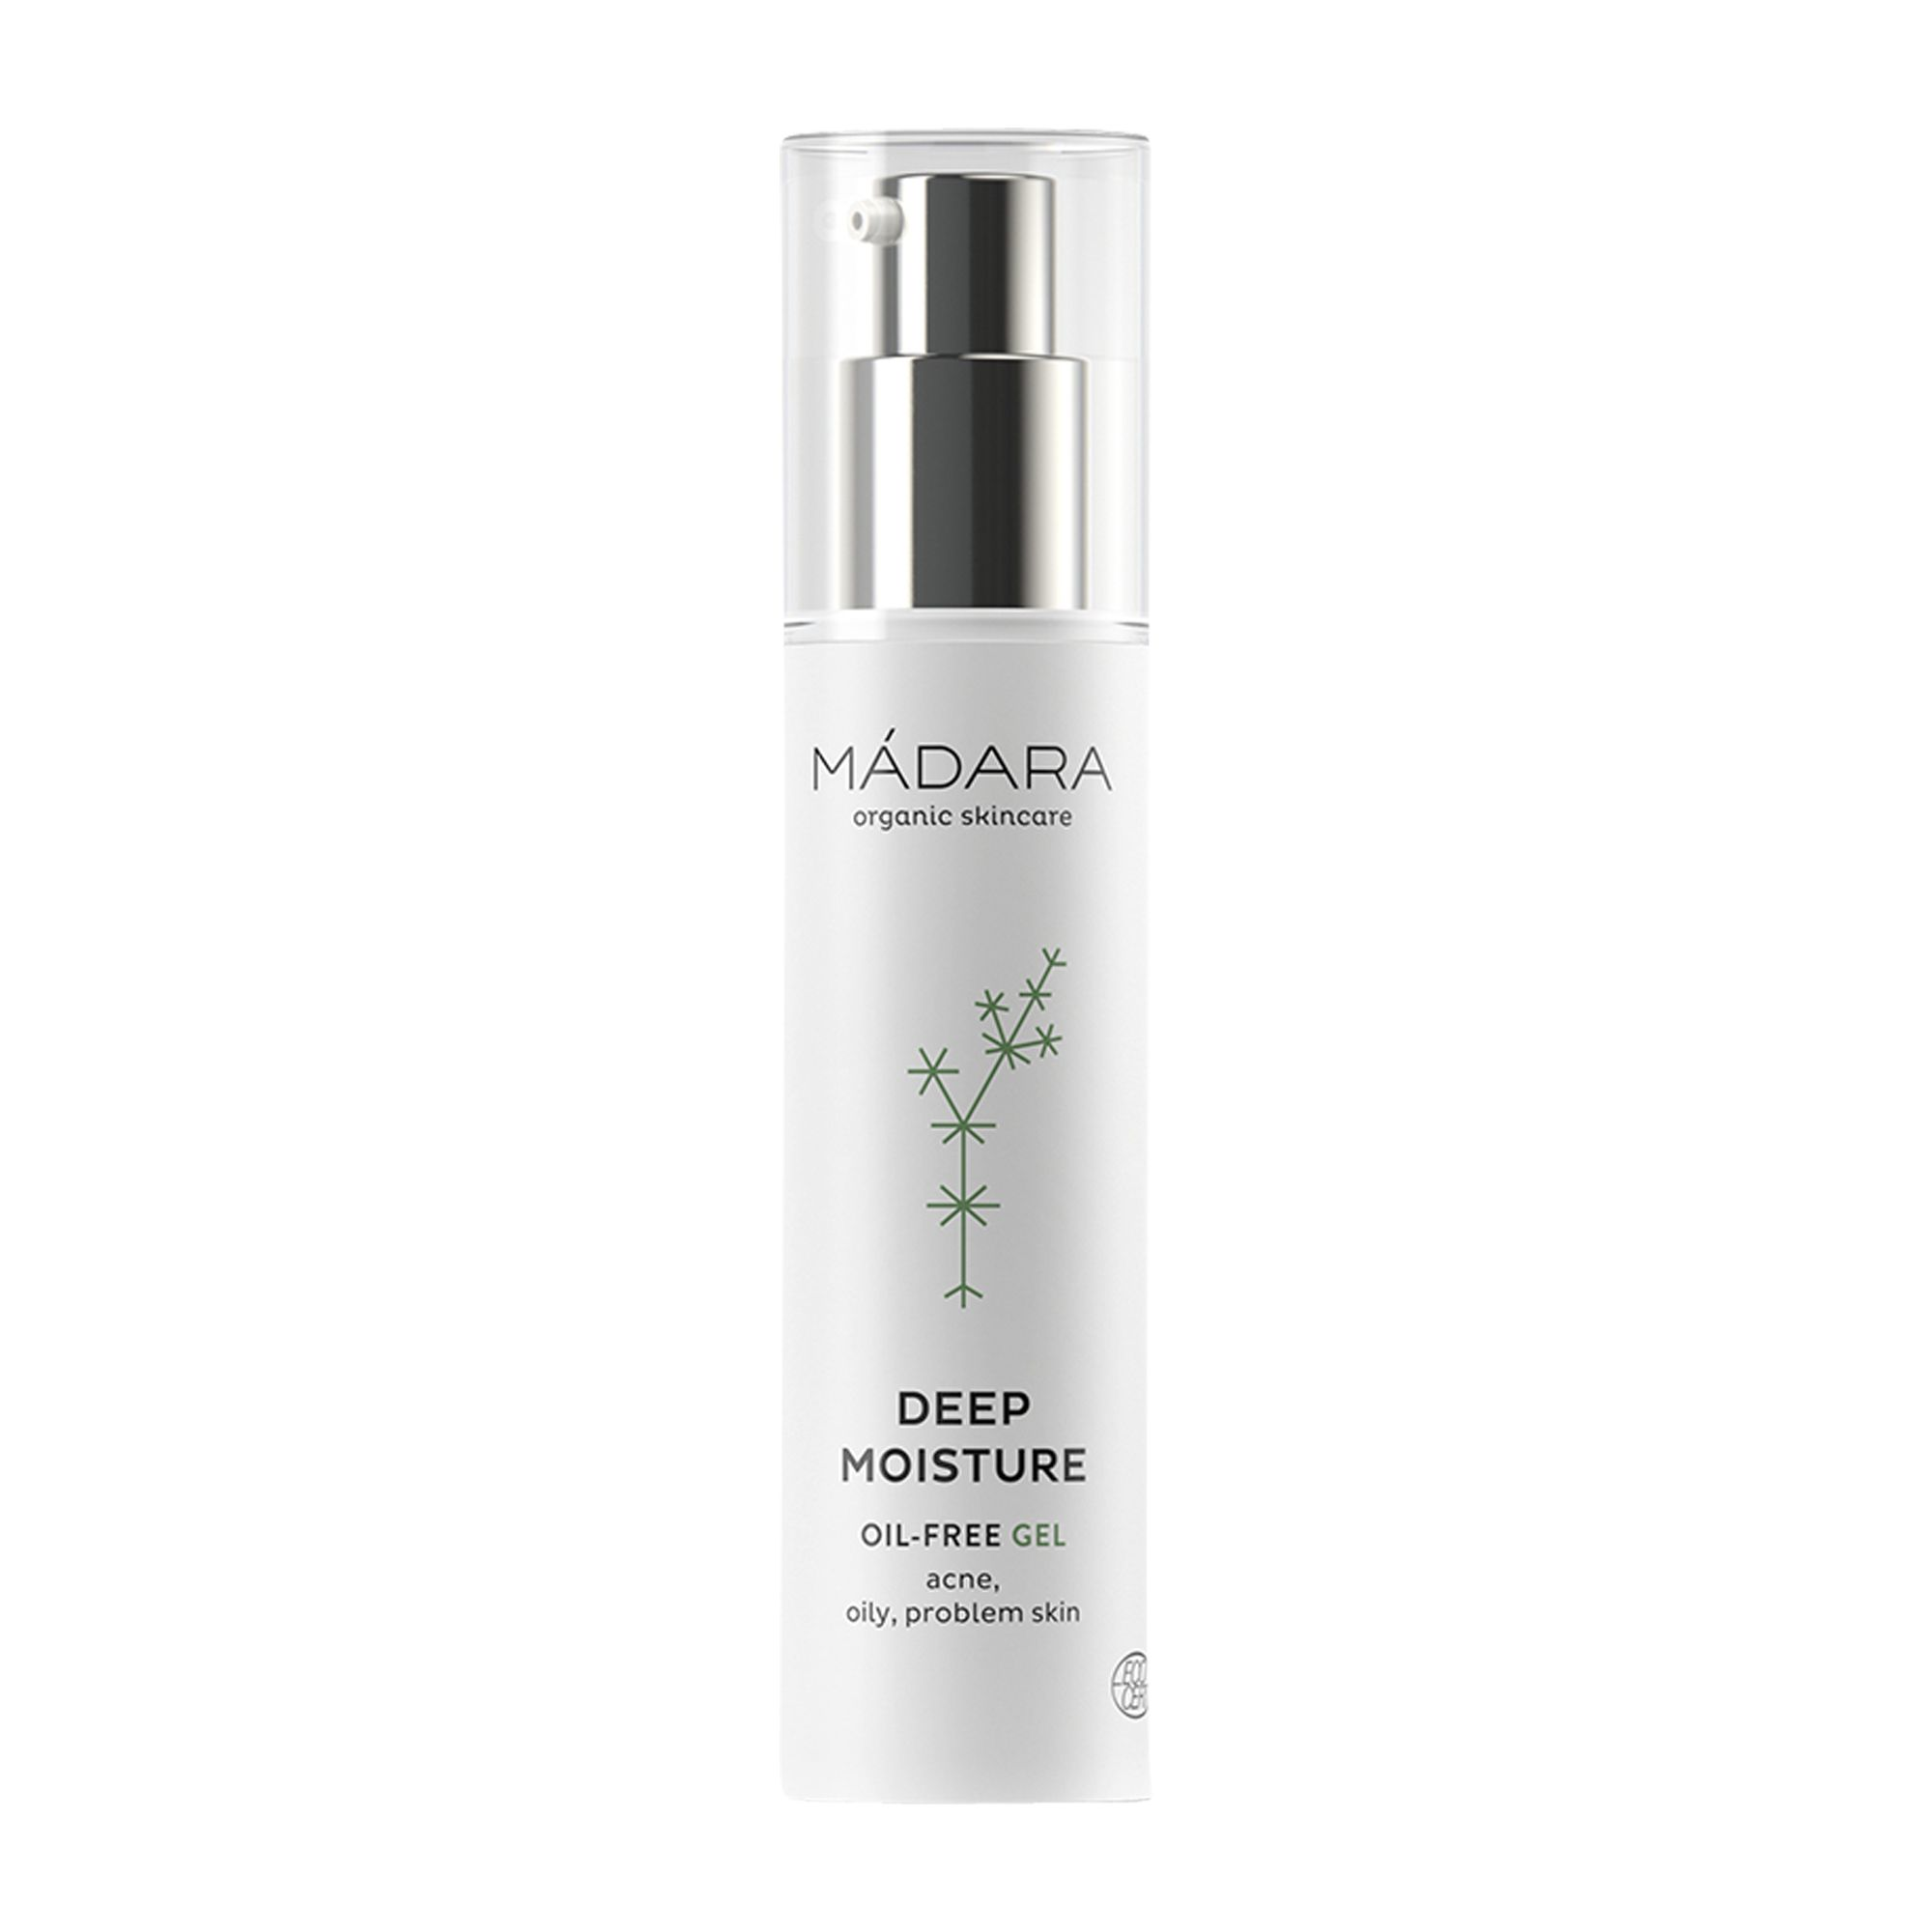 Mádara - Time Miracle Hydra Firm Hyaluron Concentrate Jelly Serum 75 ml